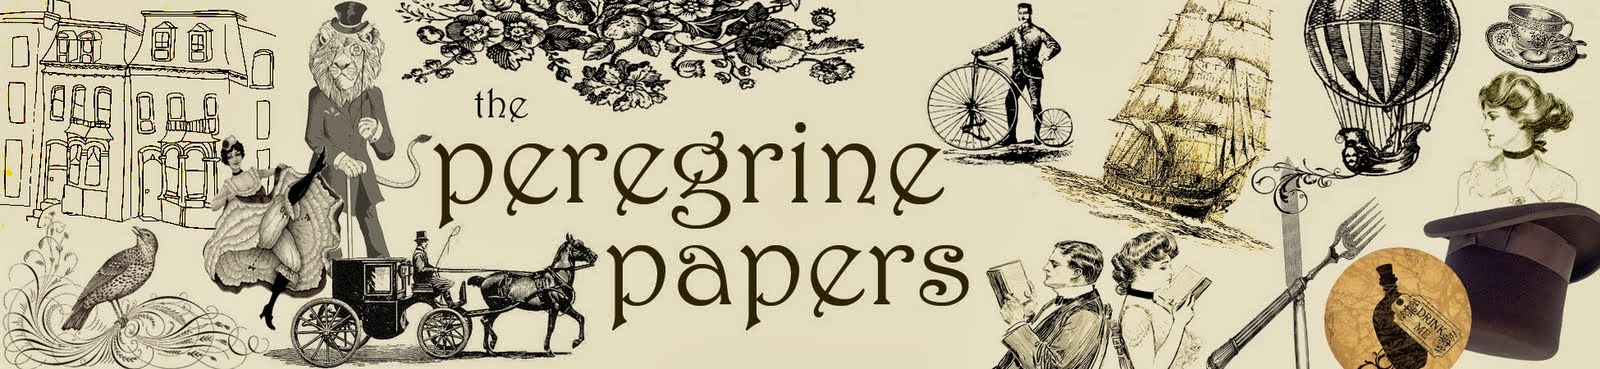 the peregrine papers